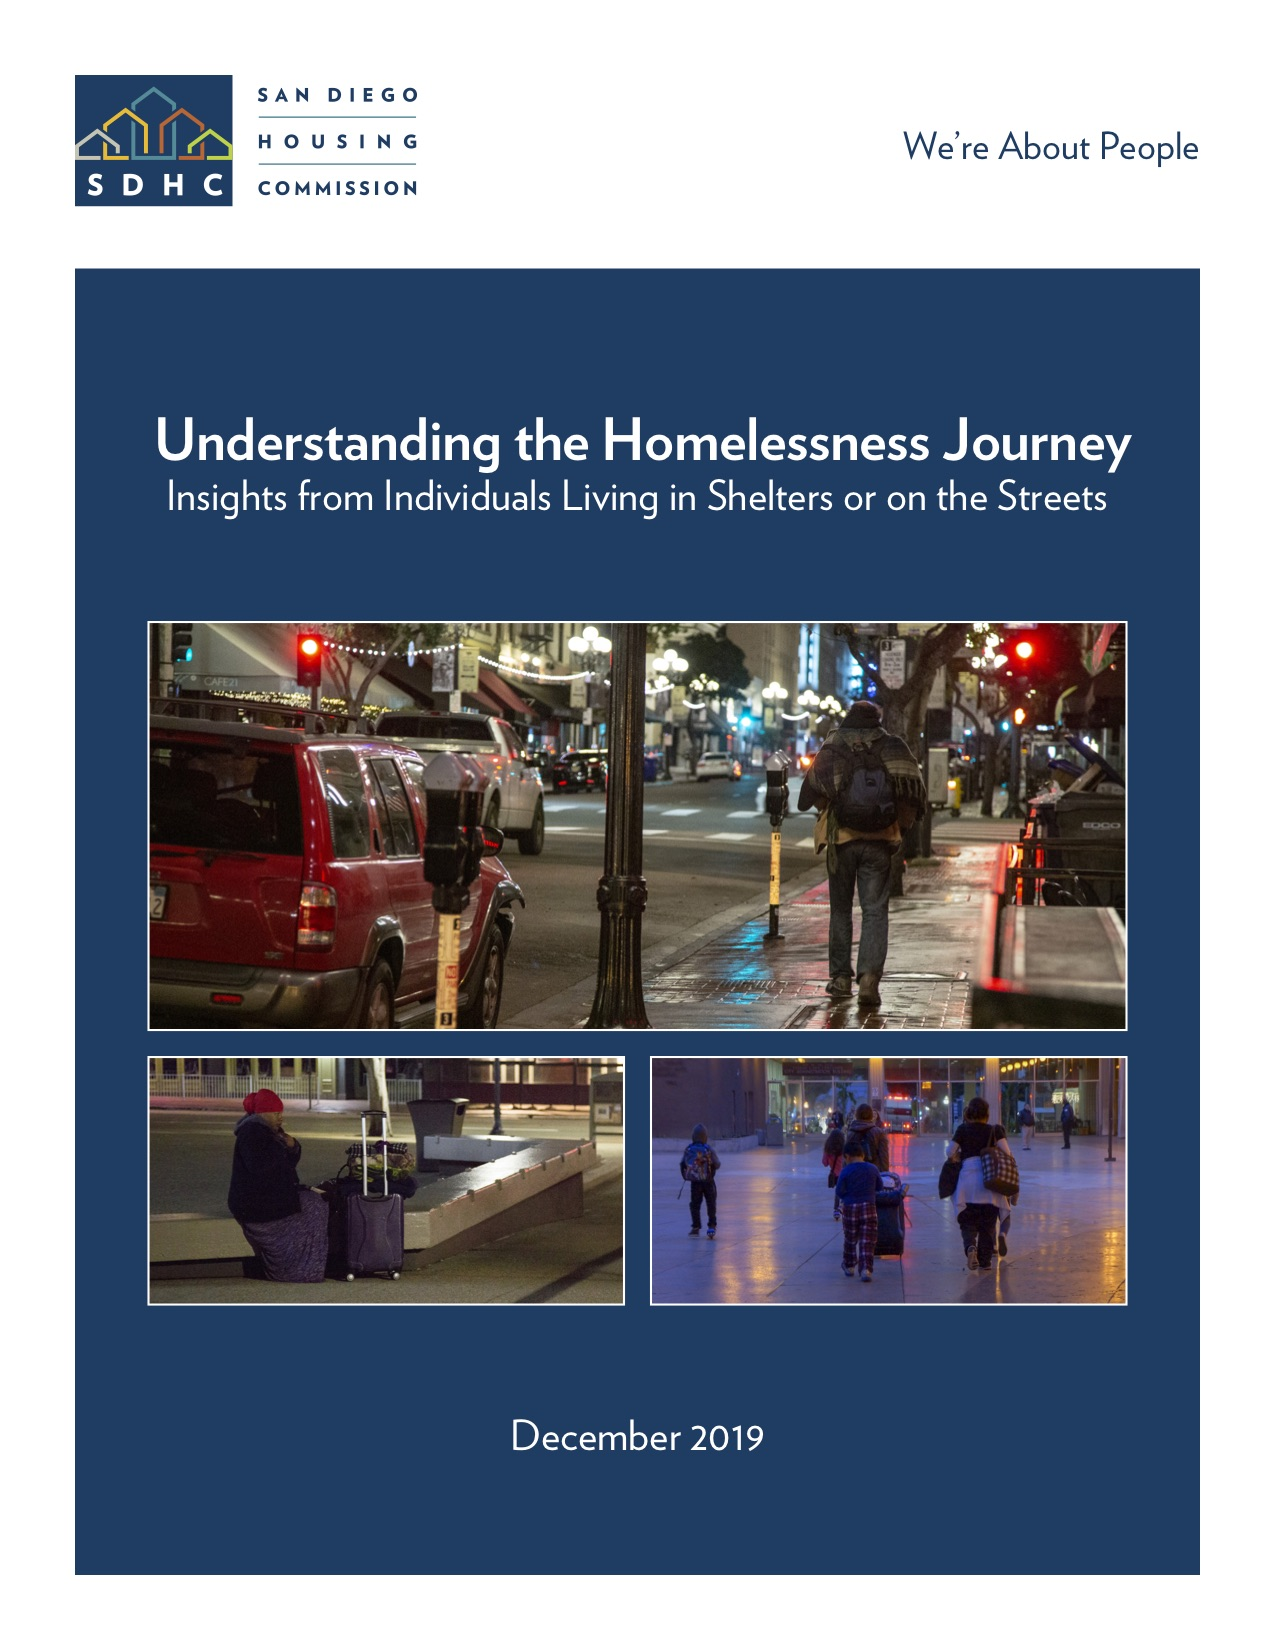 Understanding the Homelessness Journey–Insights from Individuals Living in Shelters & on the Streets